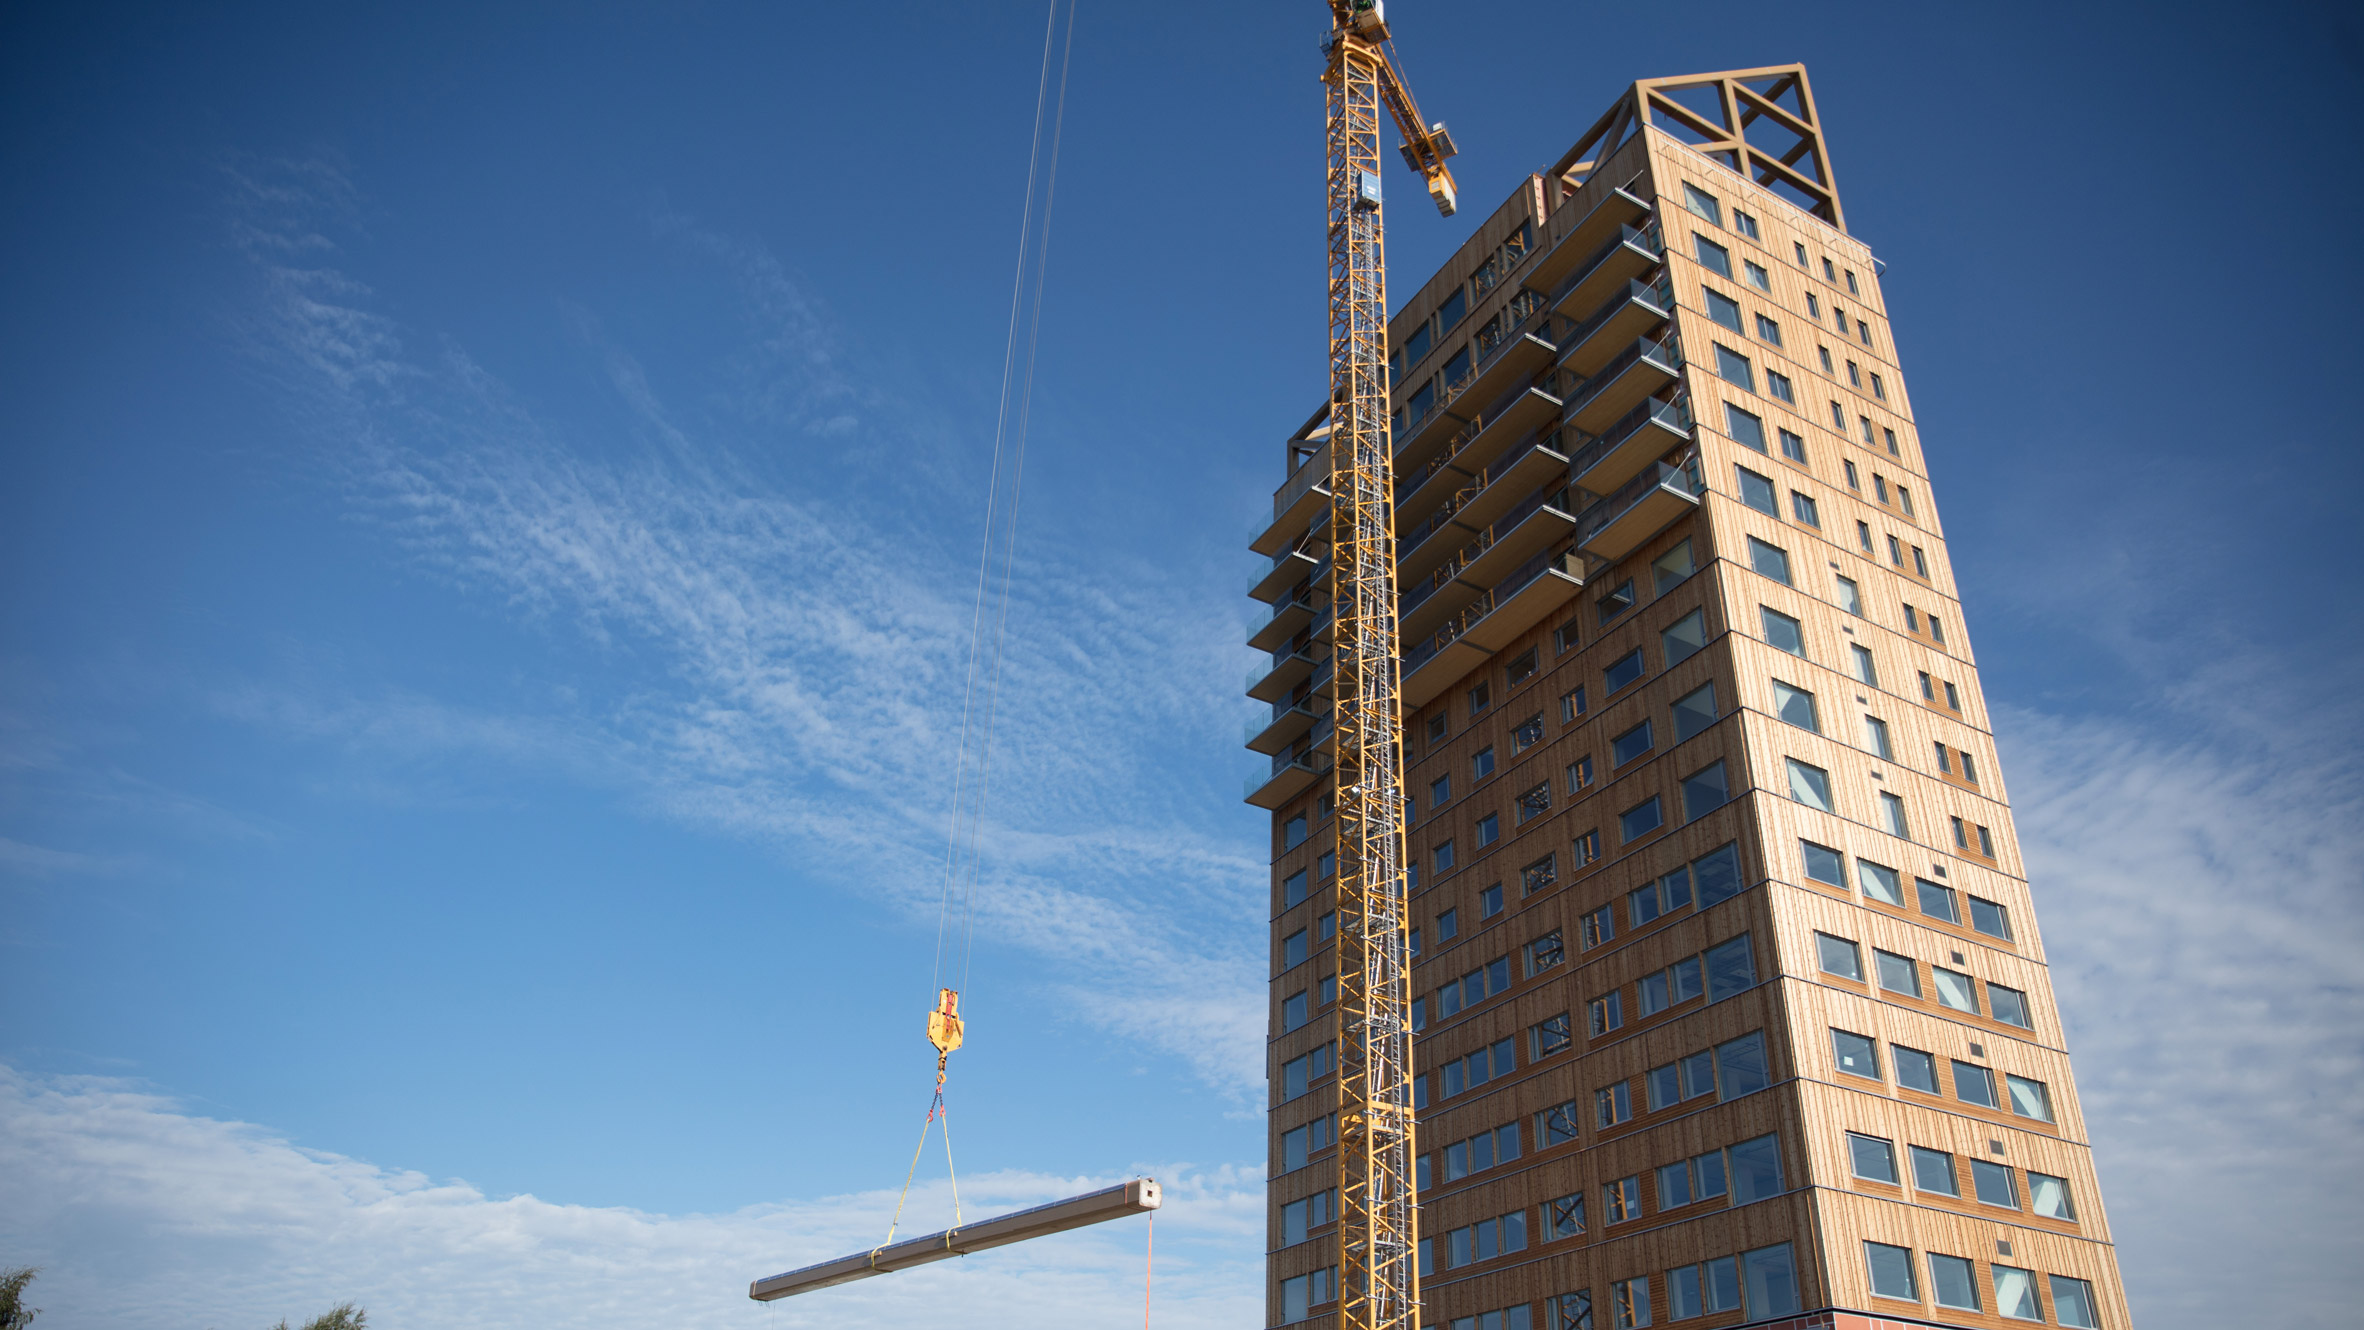 mjostarnet-norway-voll-worlds-tallest-timber-tower-hero.jpg